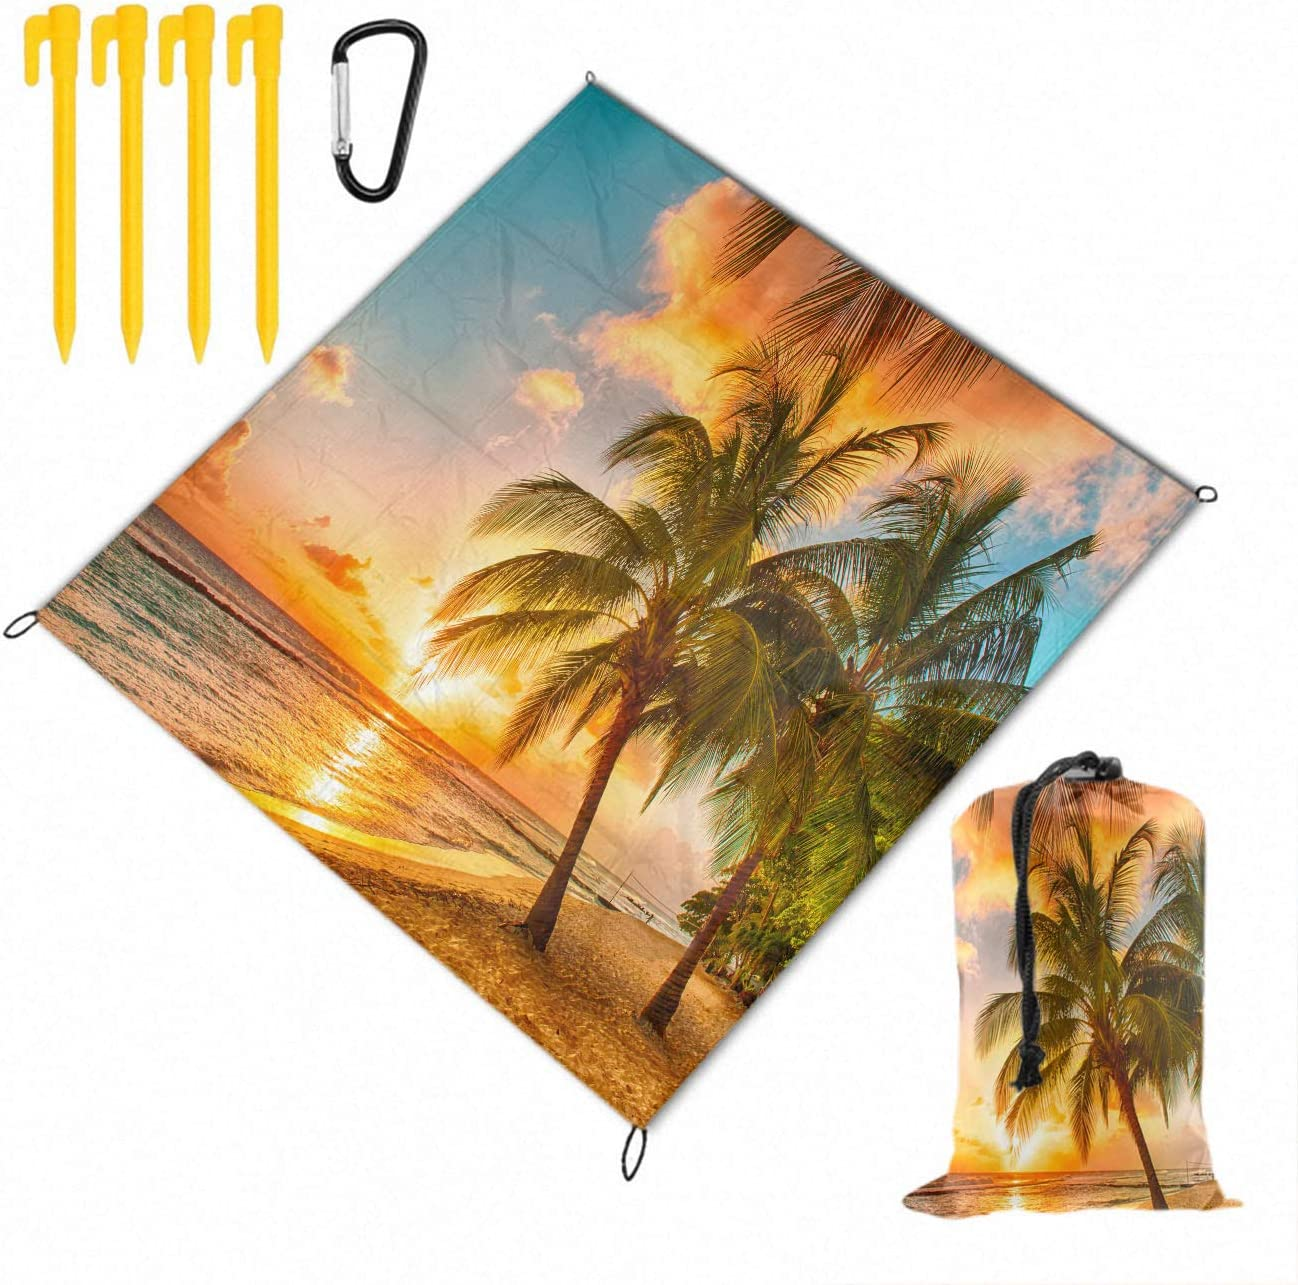 Picnic Blanket Extra Large Mat Sc Waterproof Clearance SALE! Limited time! with special price Backing Nature